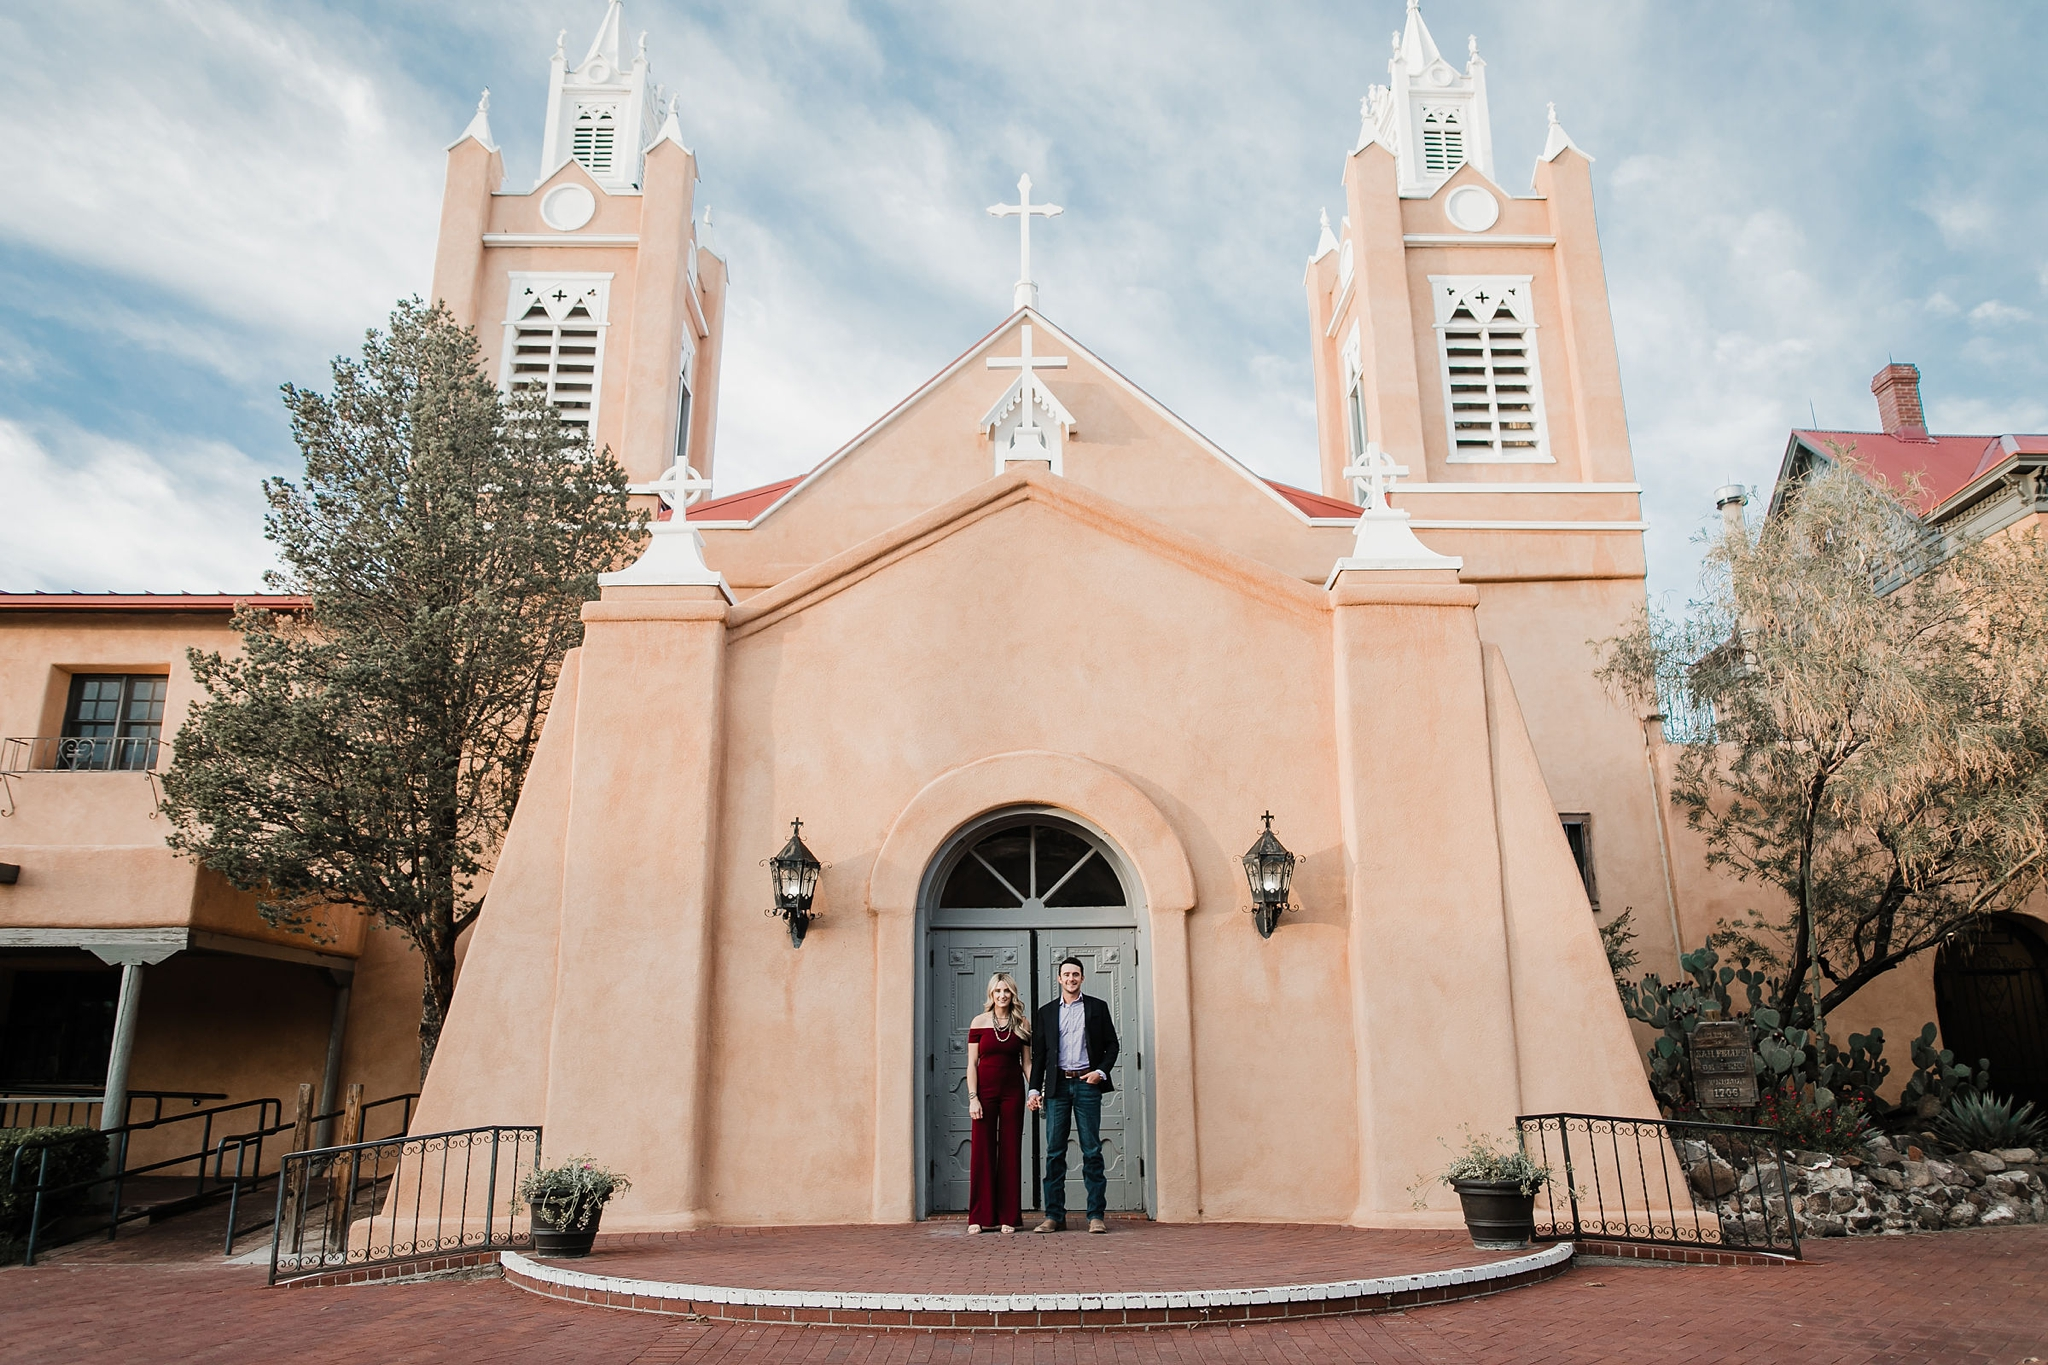 Alicia+lucia+photography+-+albuquerque+wedding+photographer+-+santa+fe+wedding+photography+-+new+mexico+wedding+photographer+-+new+mexico+wedding+-+new+mexico+engagement+-+albuquerque+engagement+-+old+town+engagement_0001.jpg